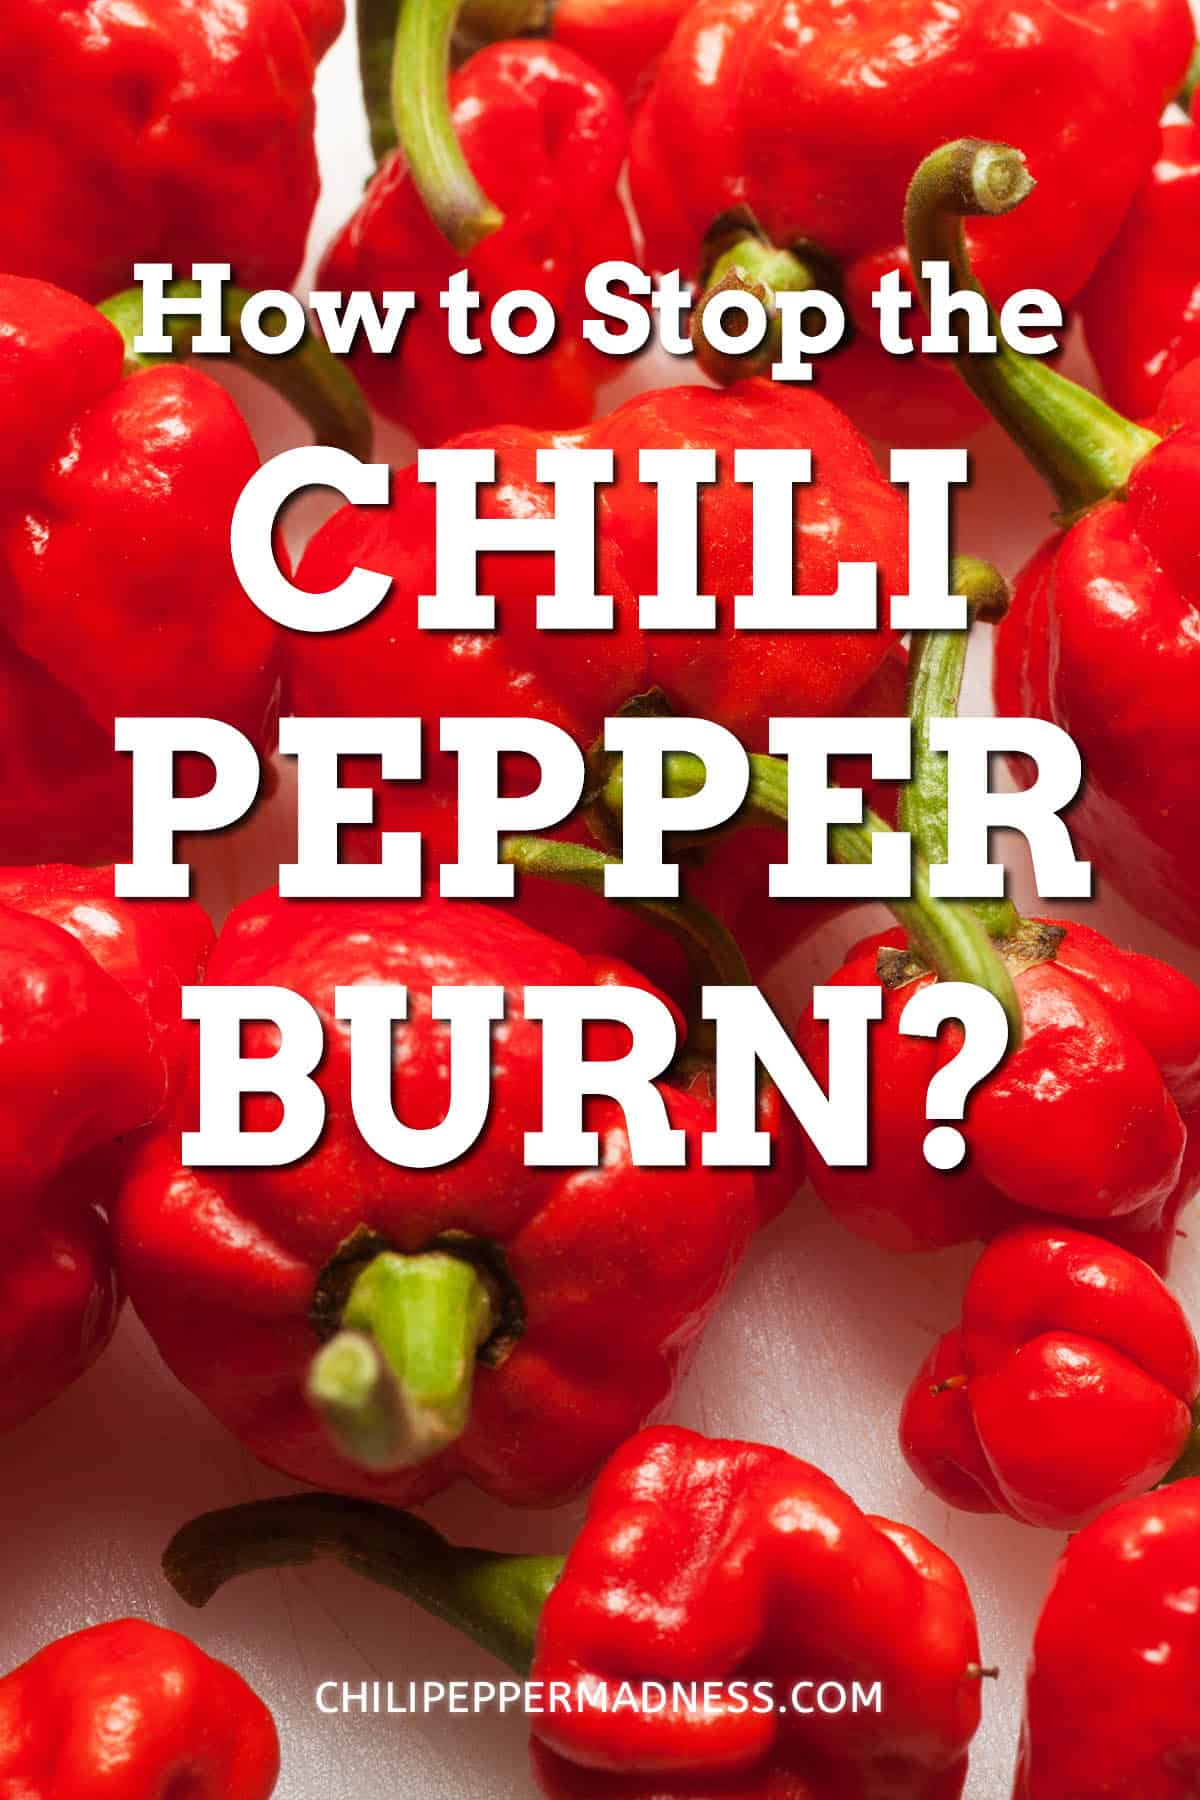 How Do You Stop the Chili Pepper Burn?